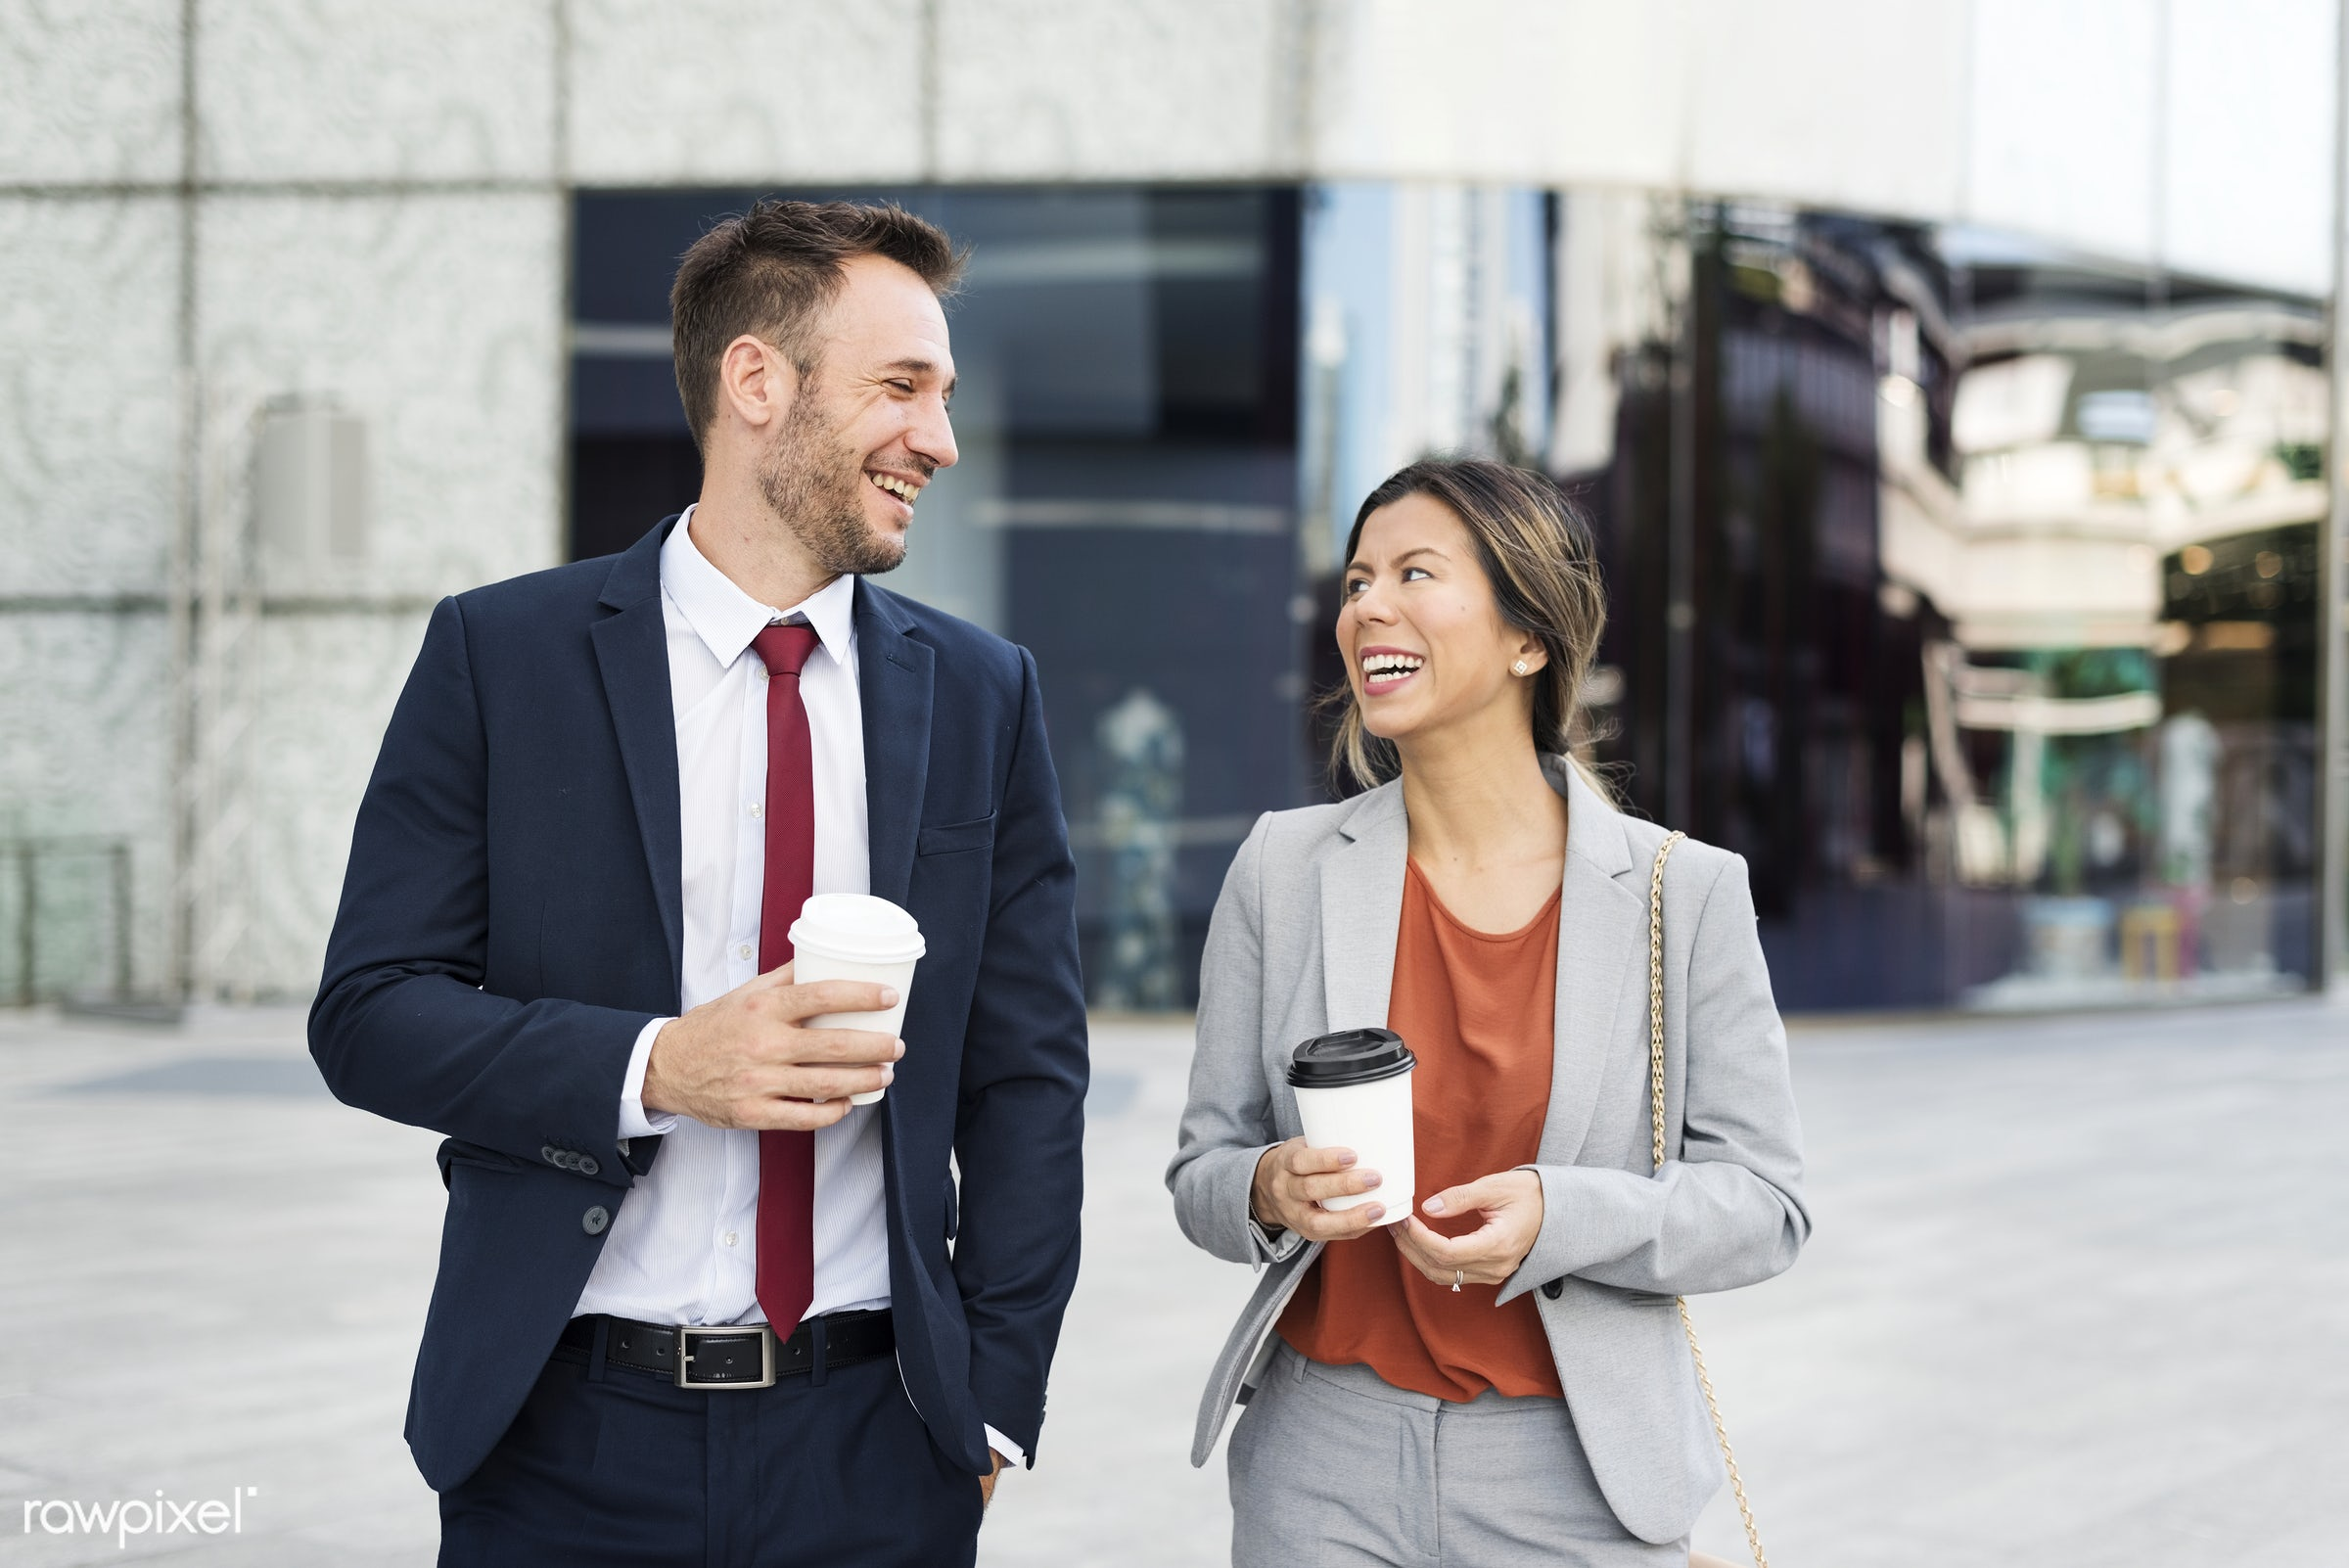 Business man and woman colleagues having a coffee break talking together - business, businessman, corporate, woman,...